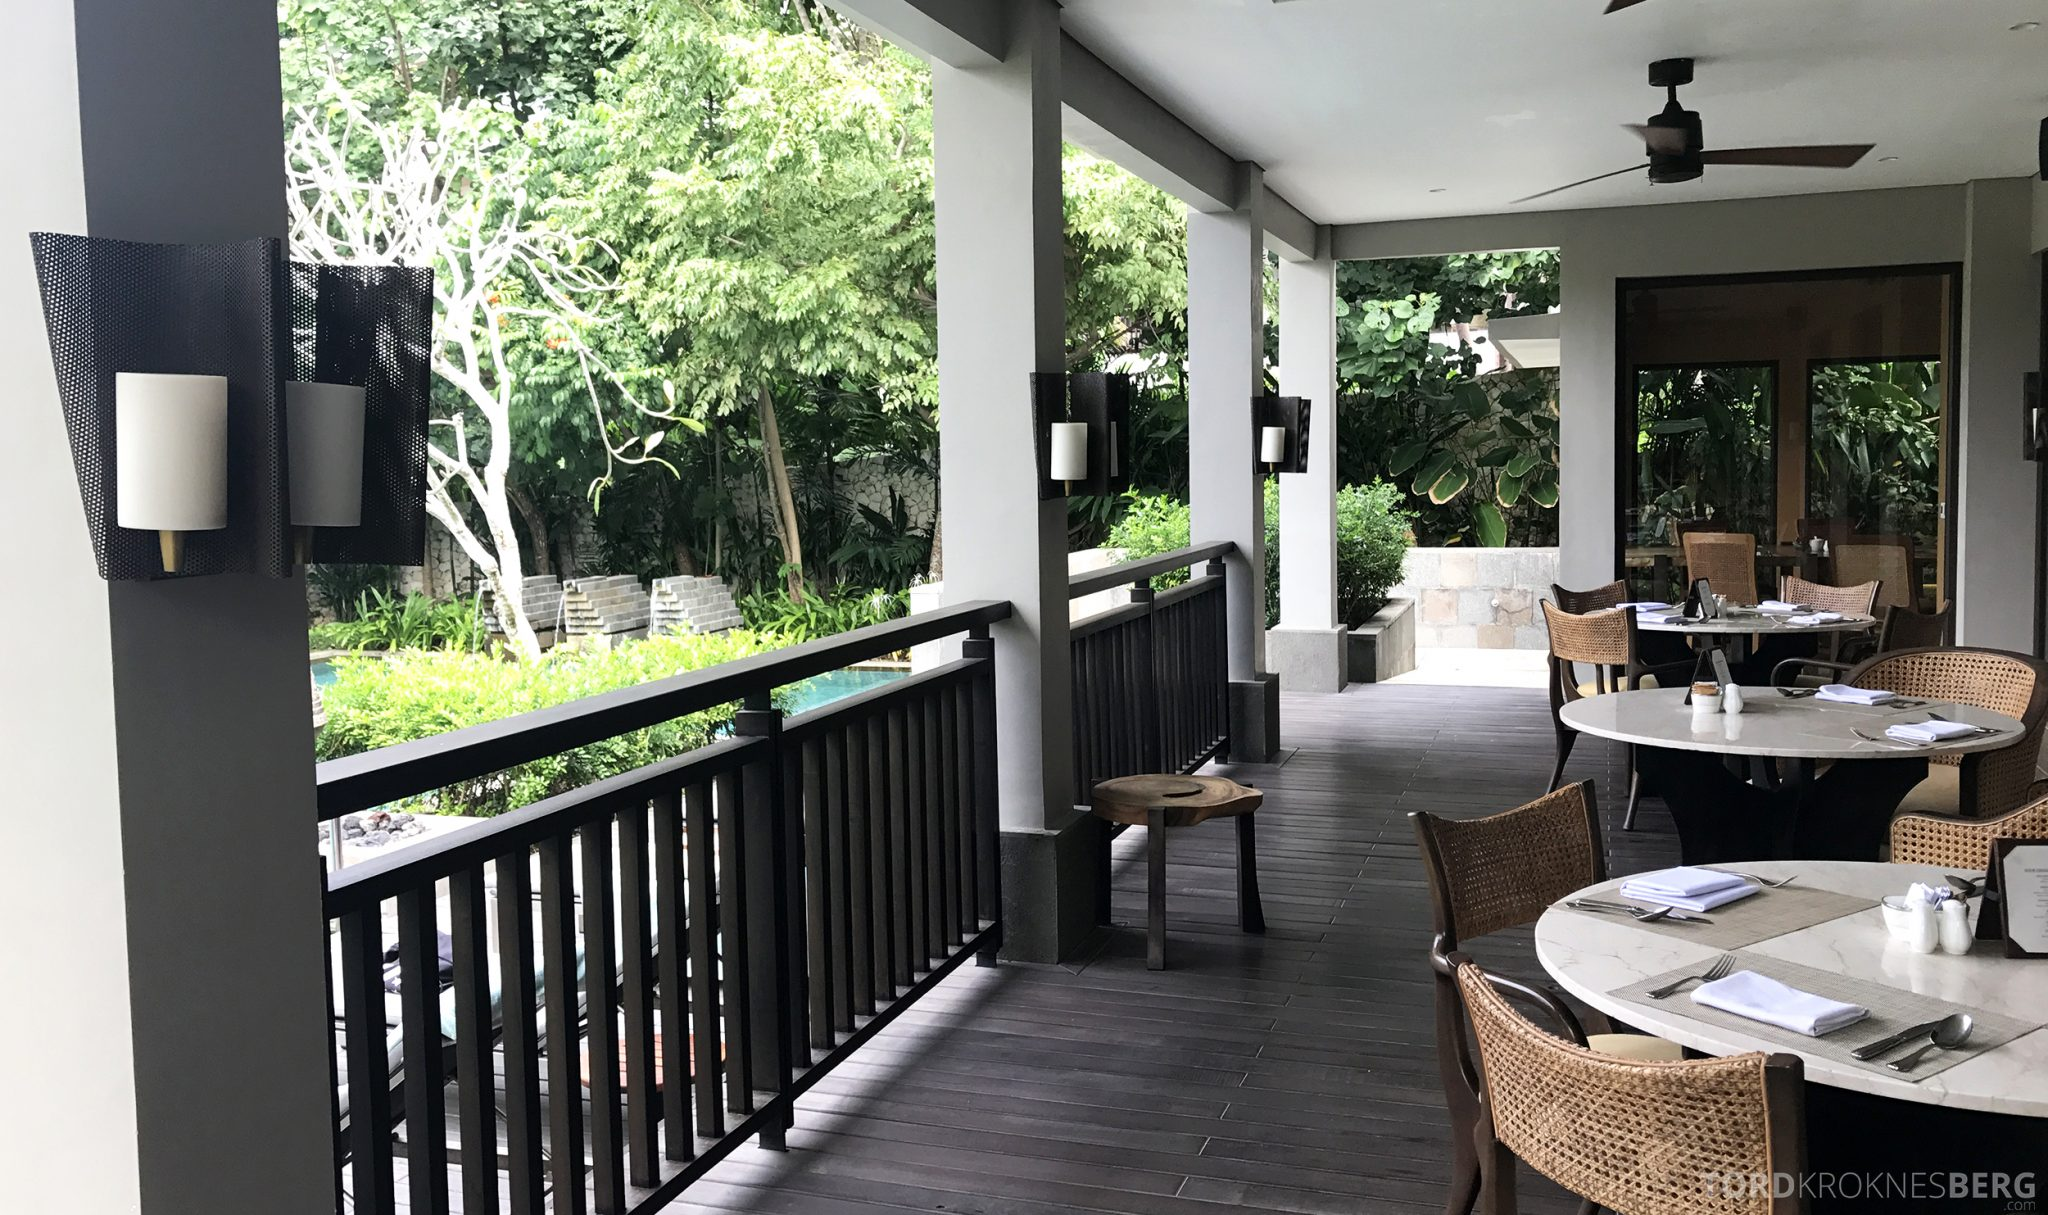 Ritz-Carlton Bali Club Lounge terrasse